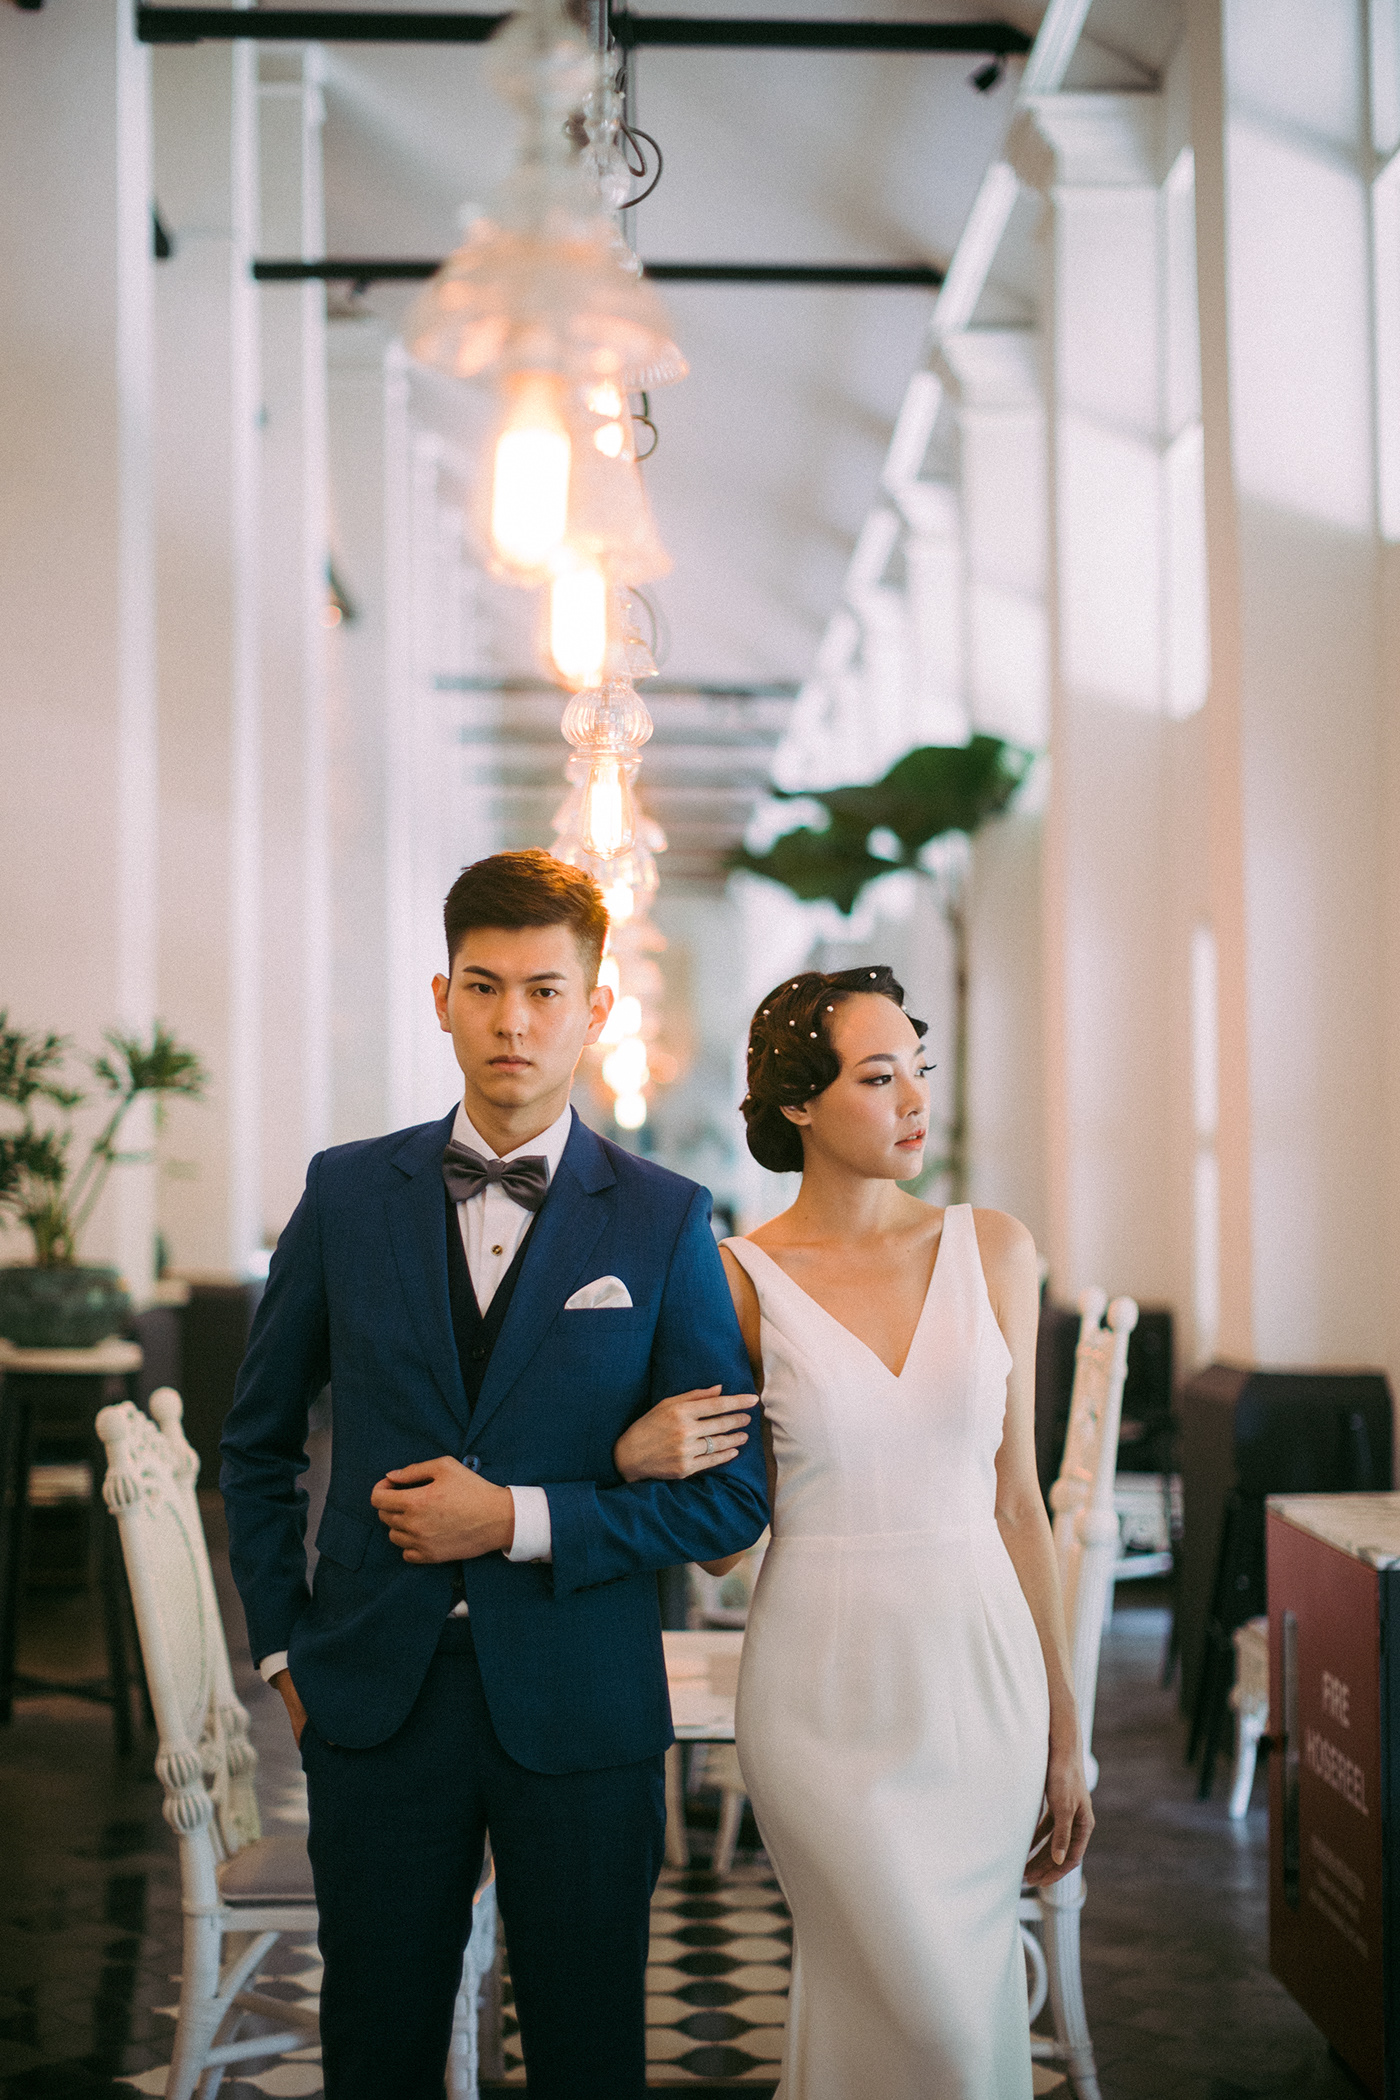 Image may contain: wedding dress, person and bride